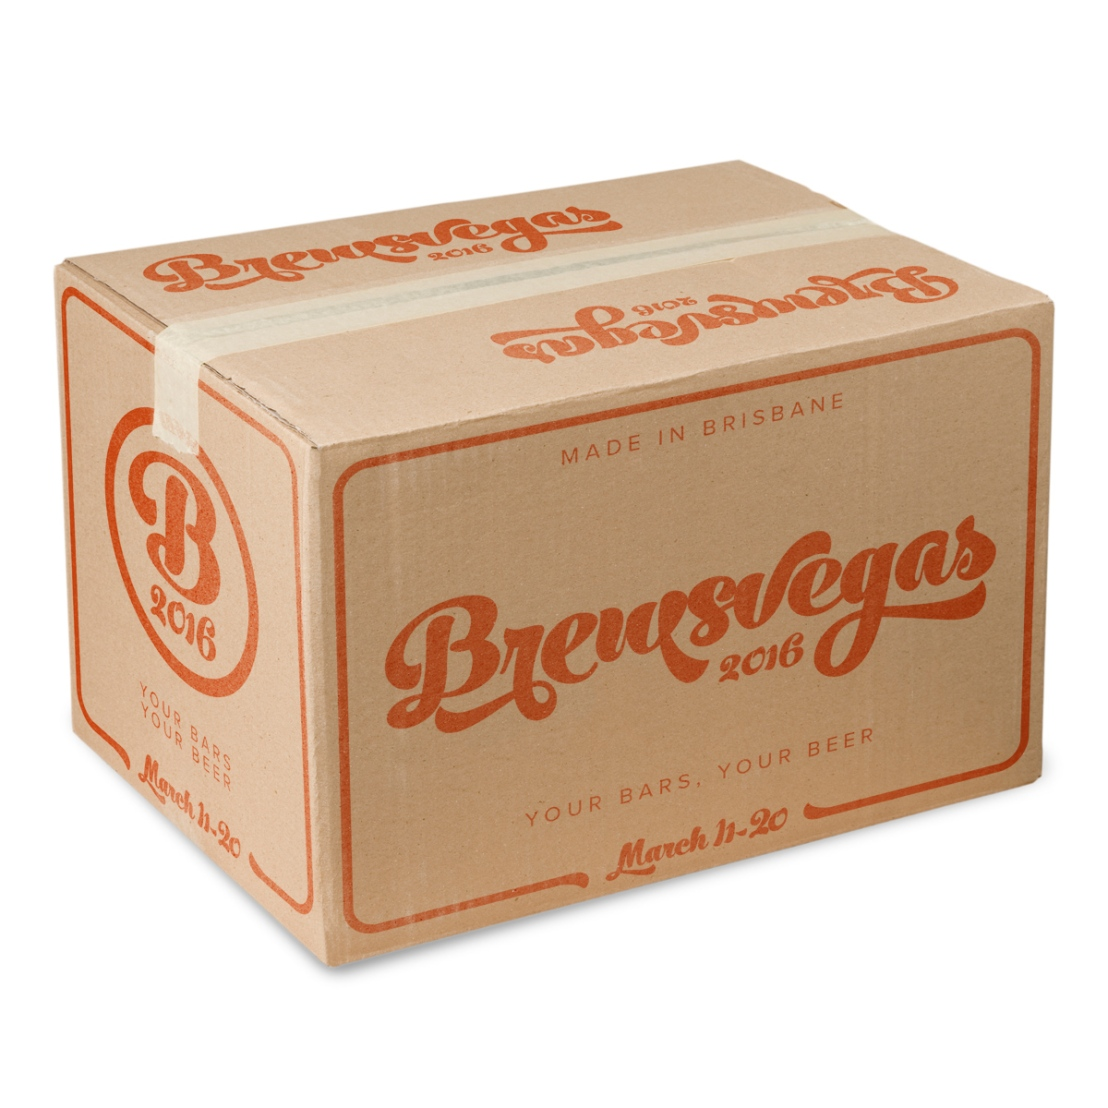 Brewsvegas Online Program is Live plus New Contest